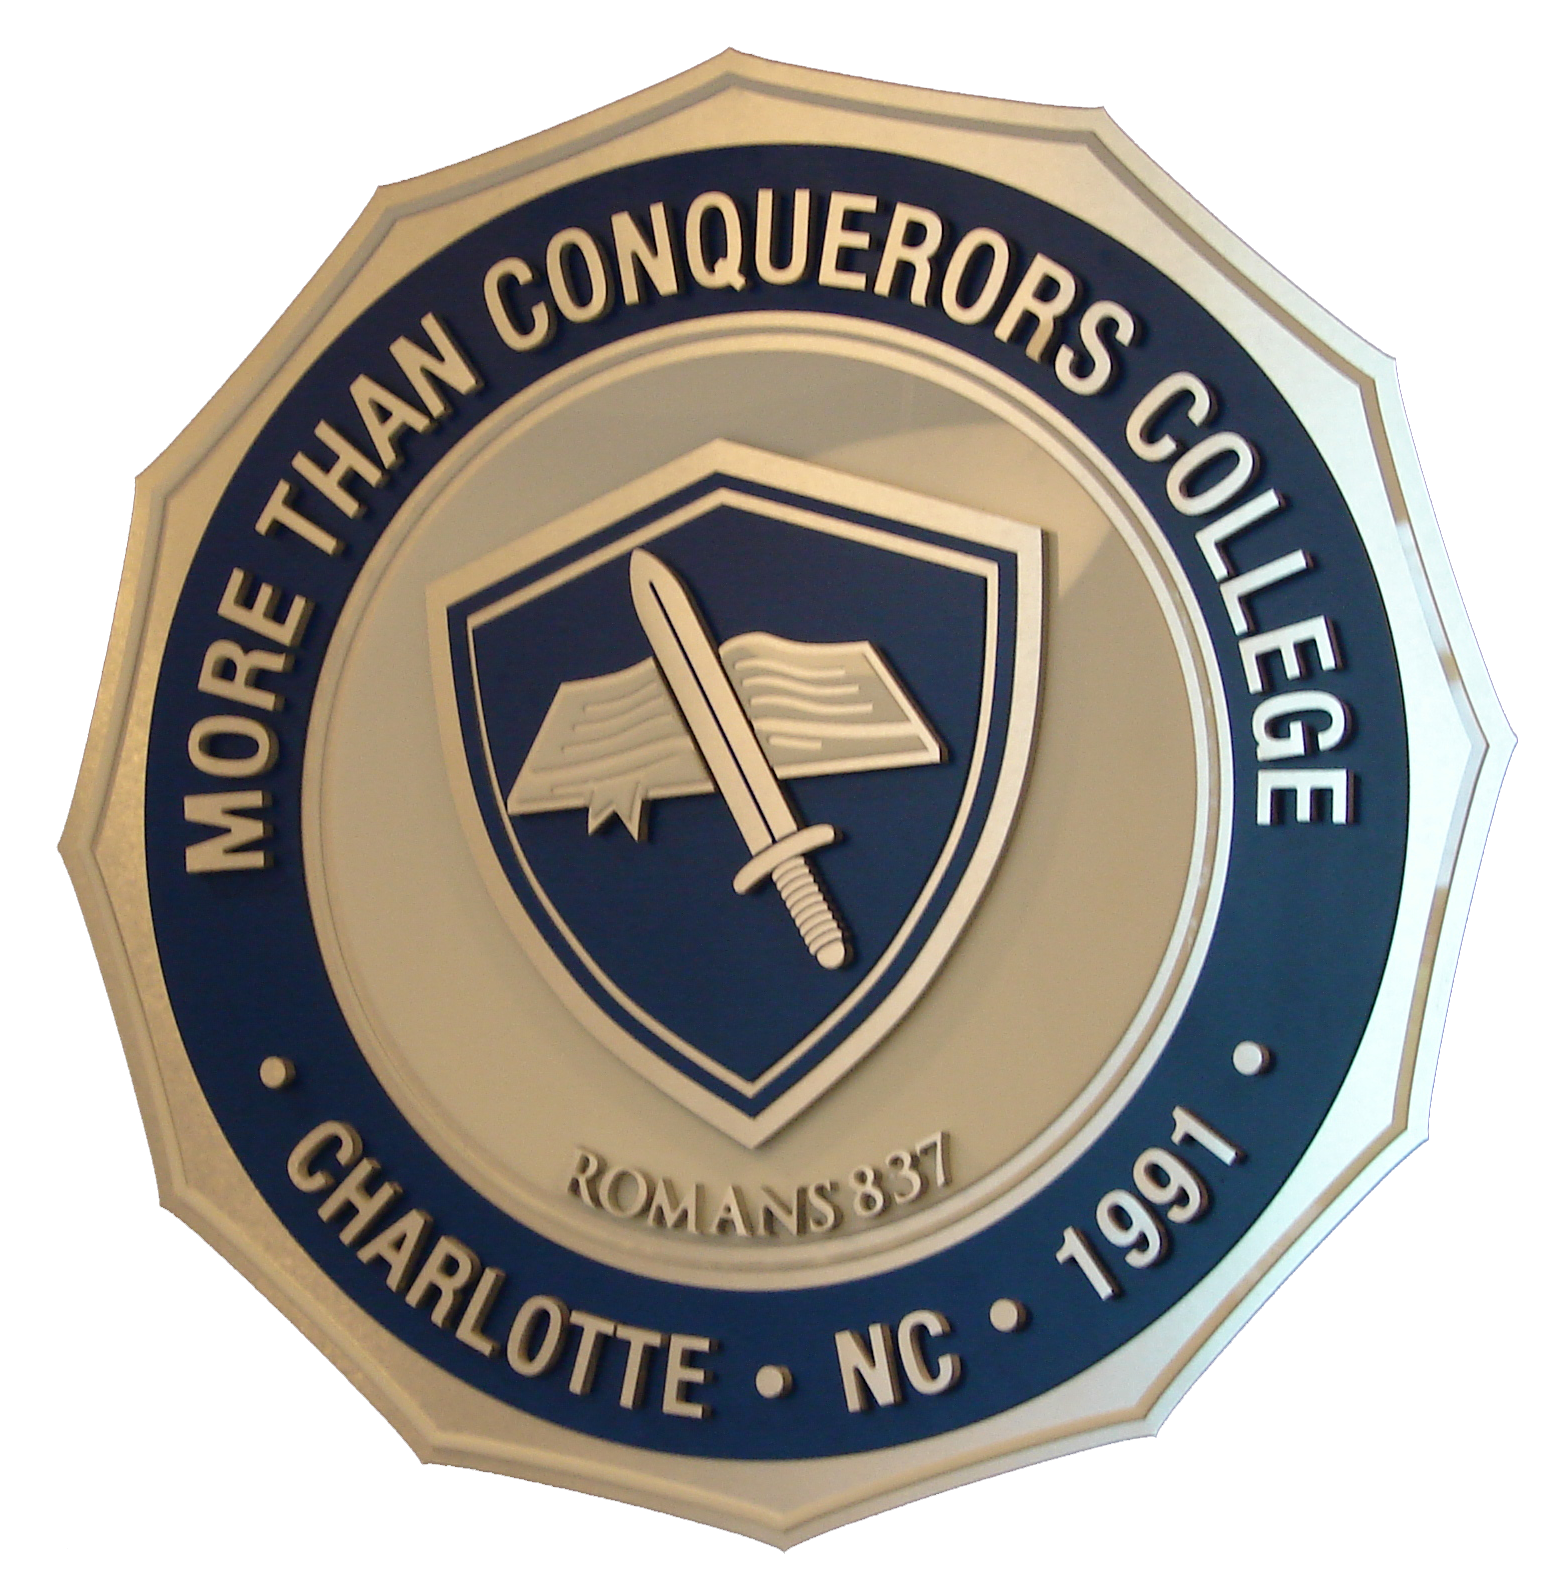 MTCC_Seal_no_white_background.png